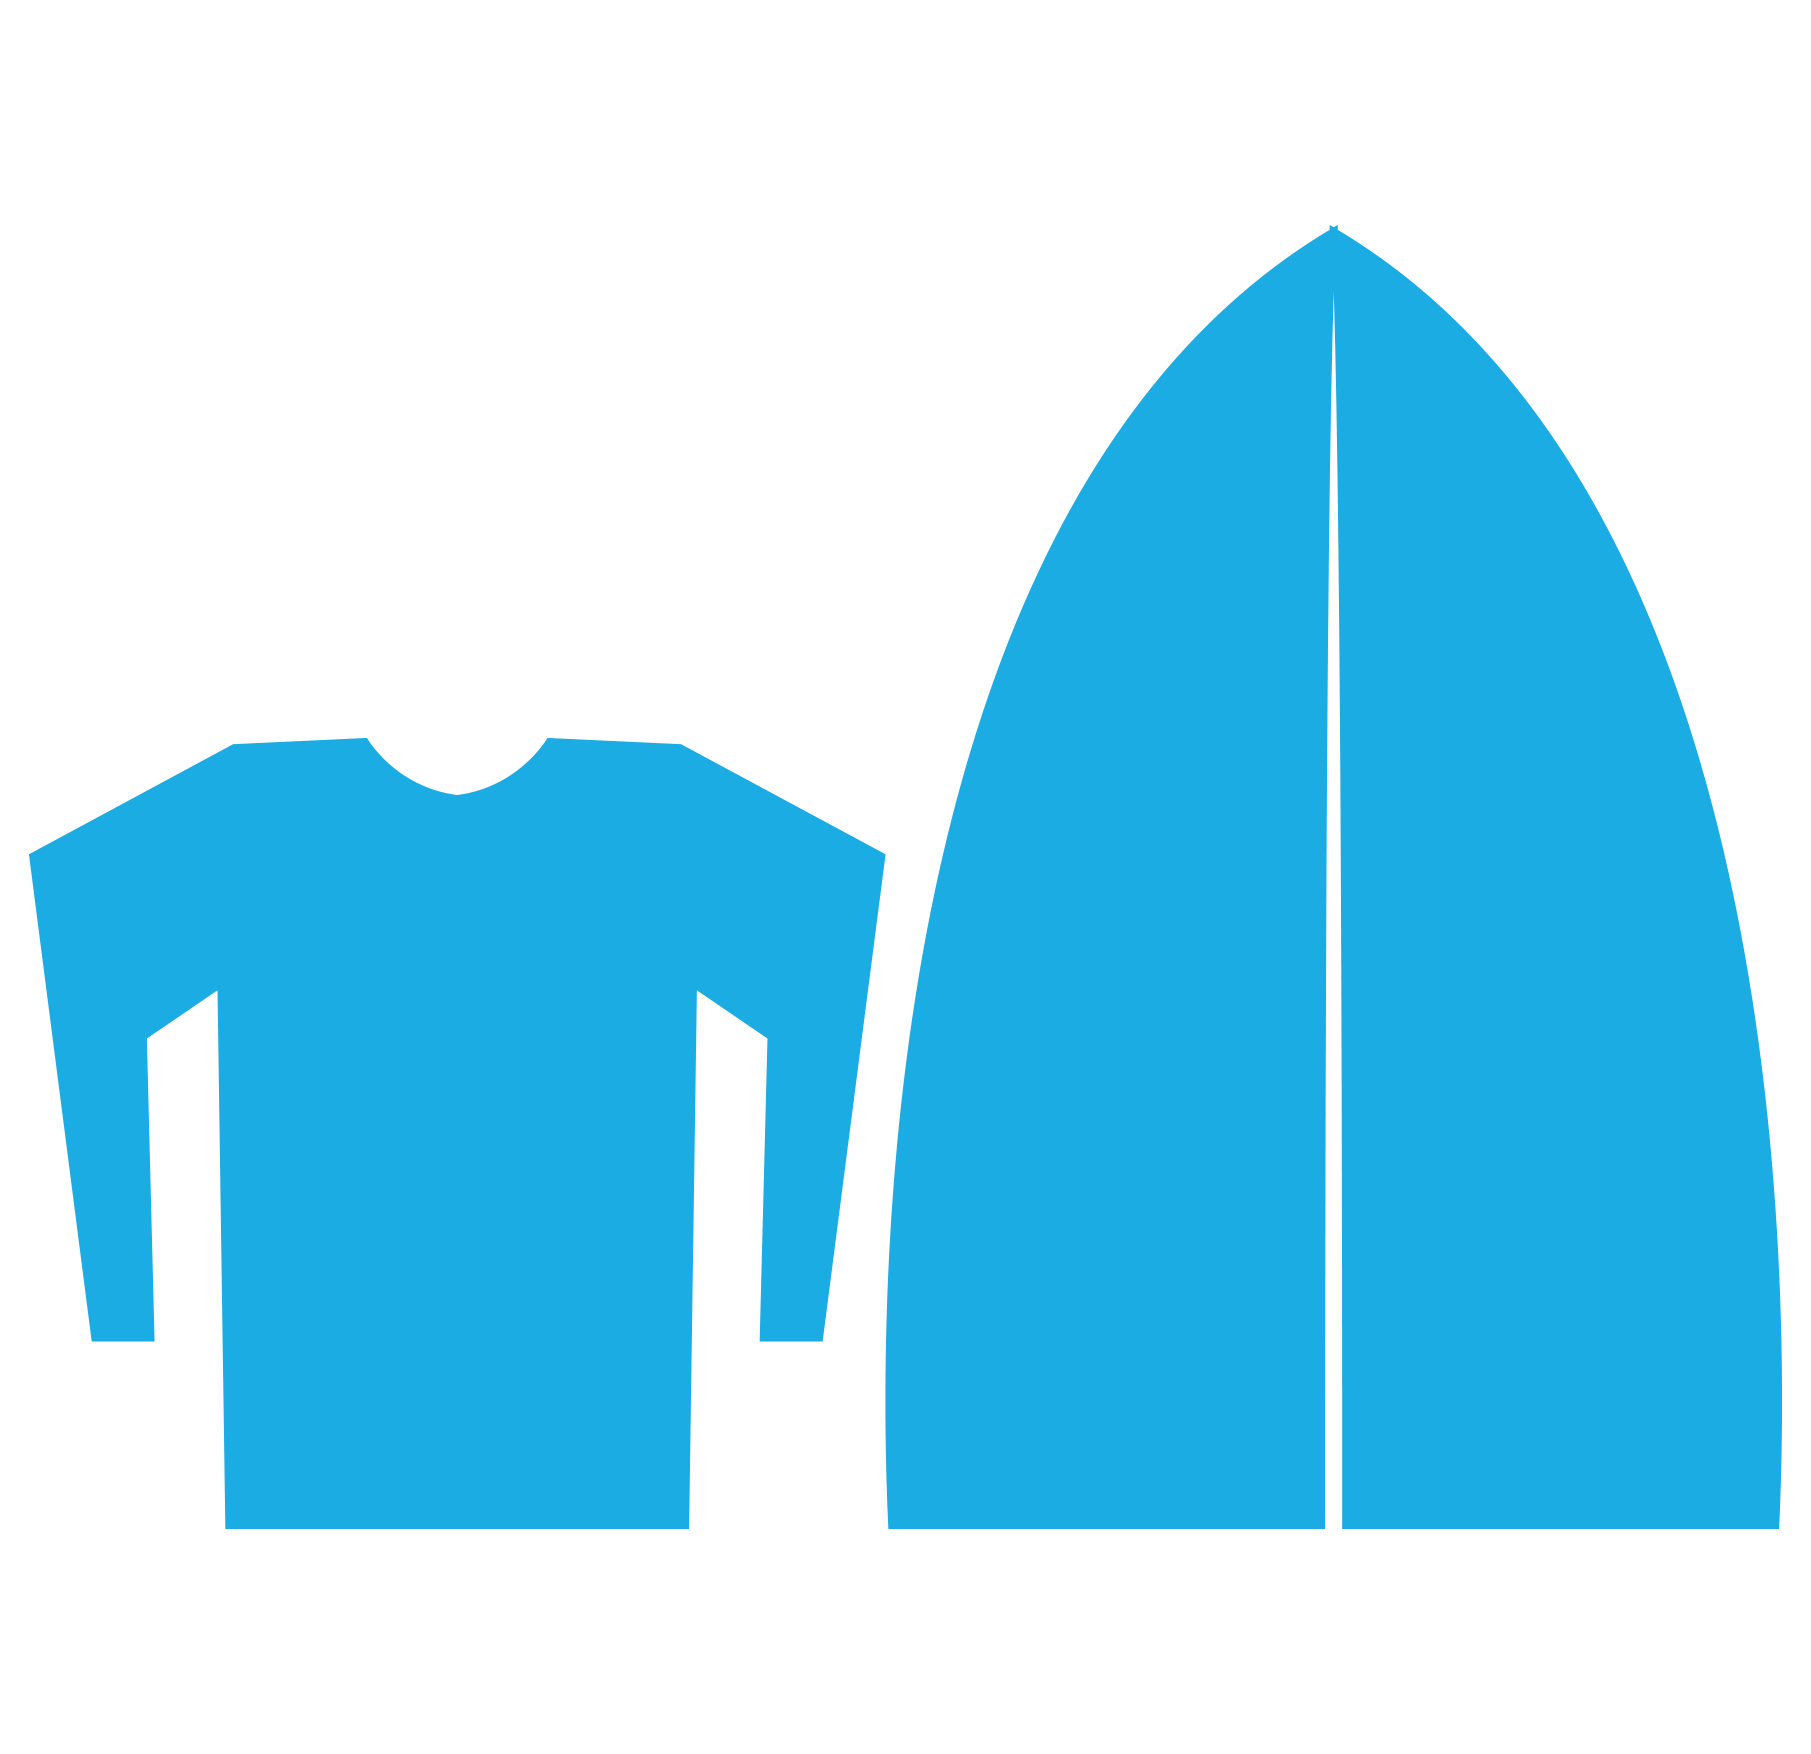 Surf gear: surf board and lycra